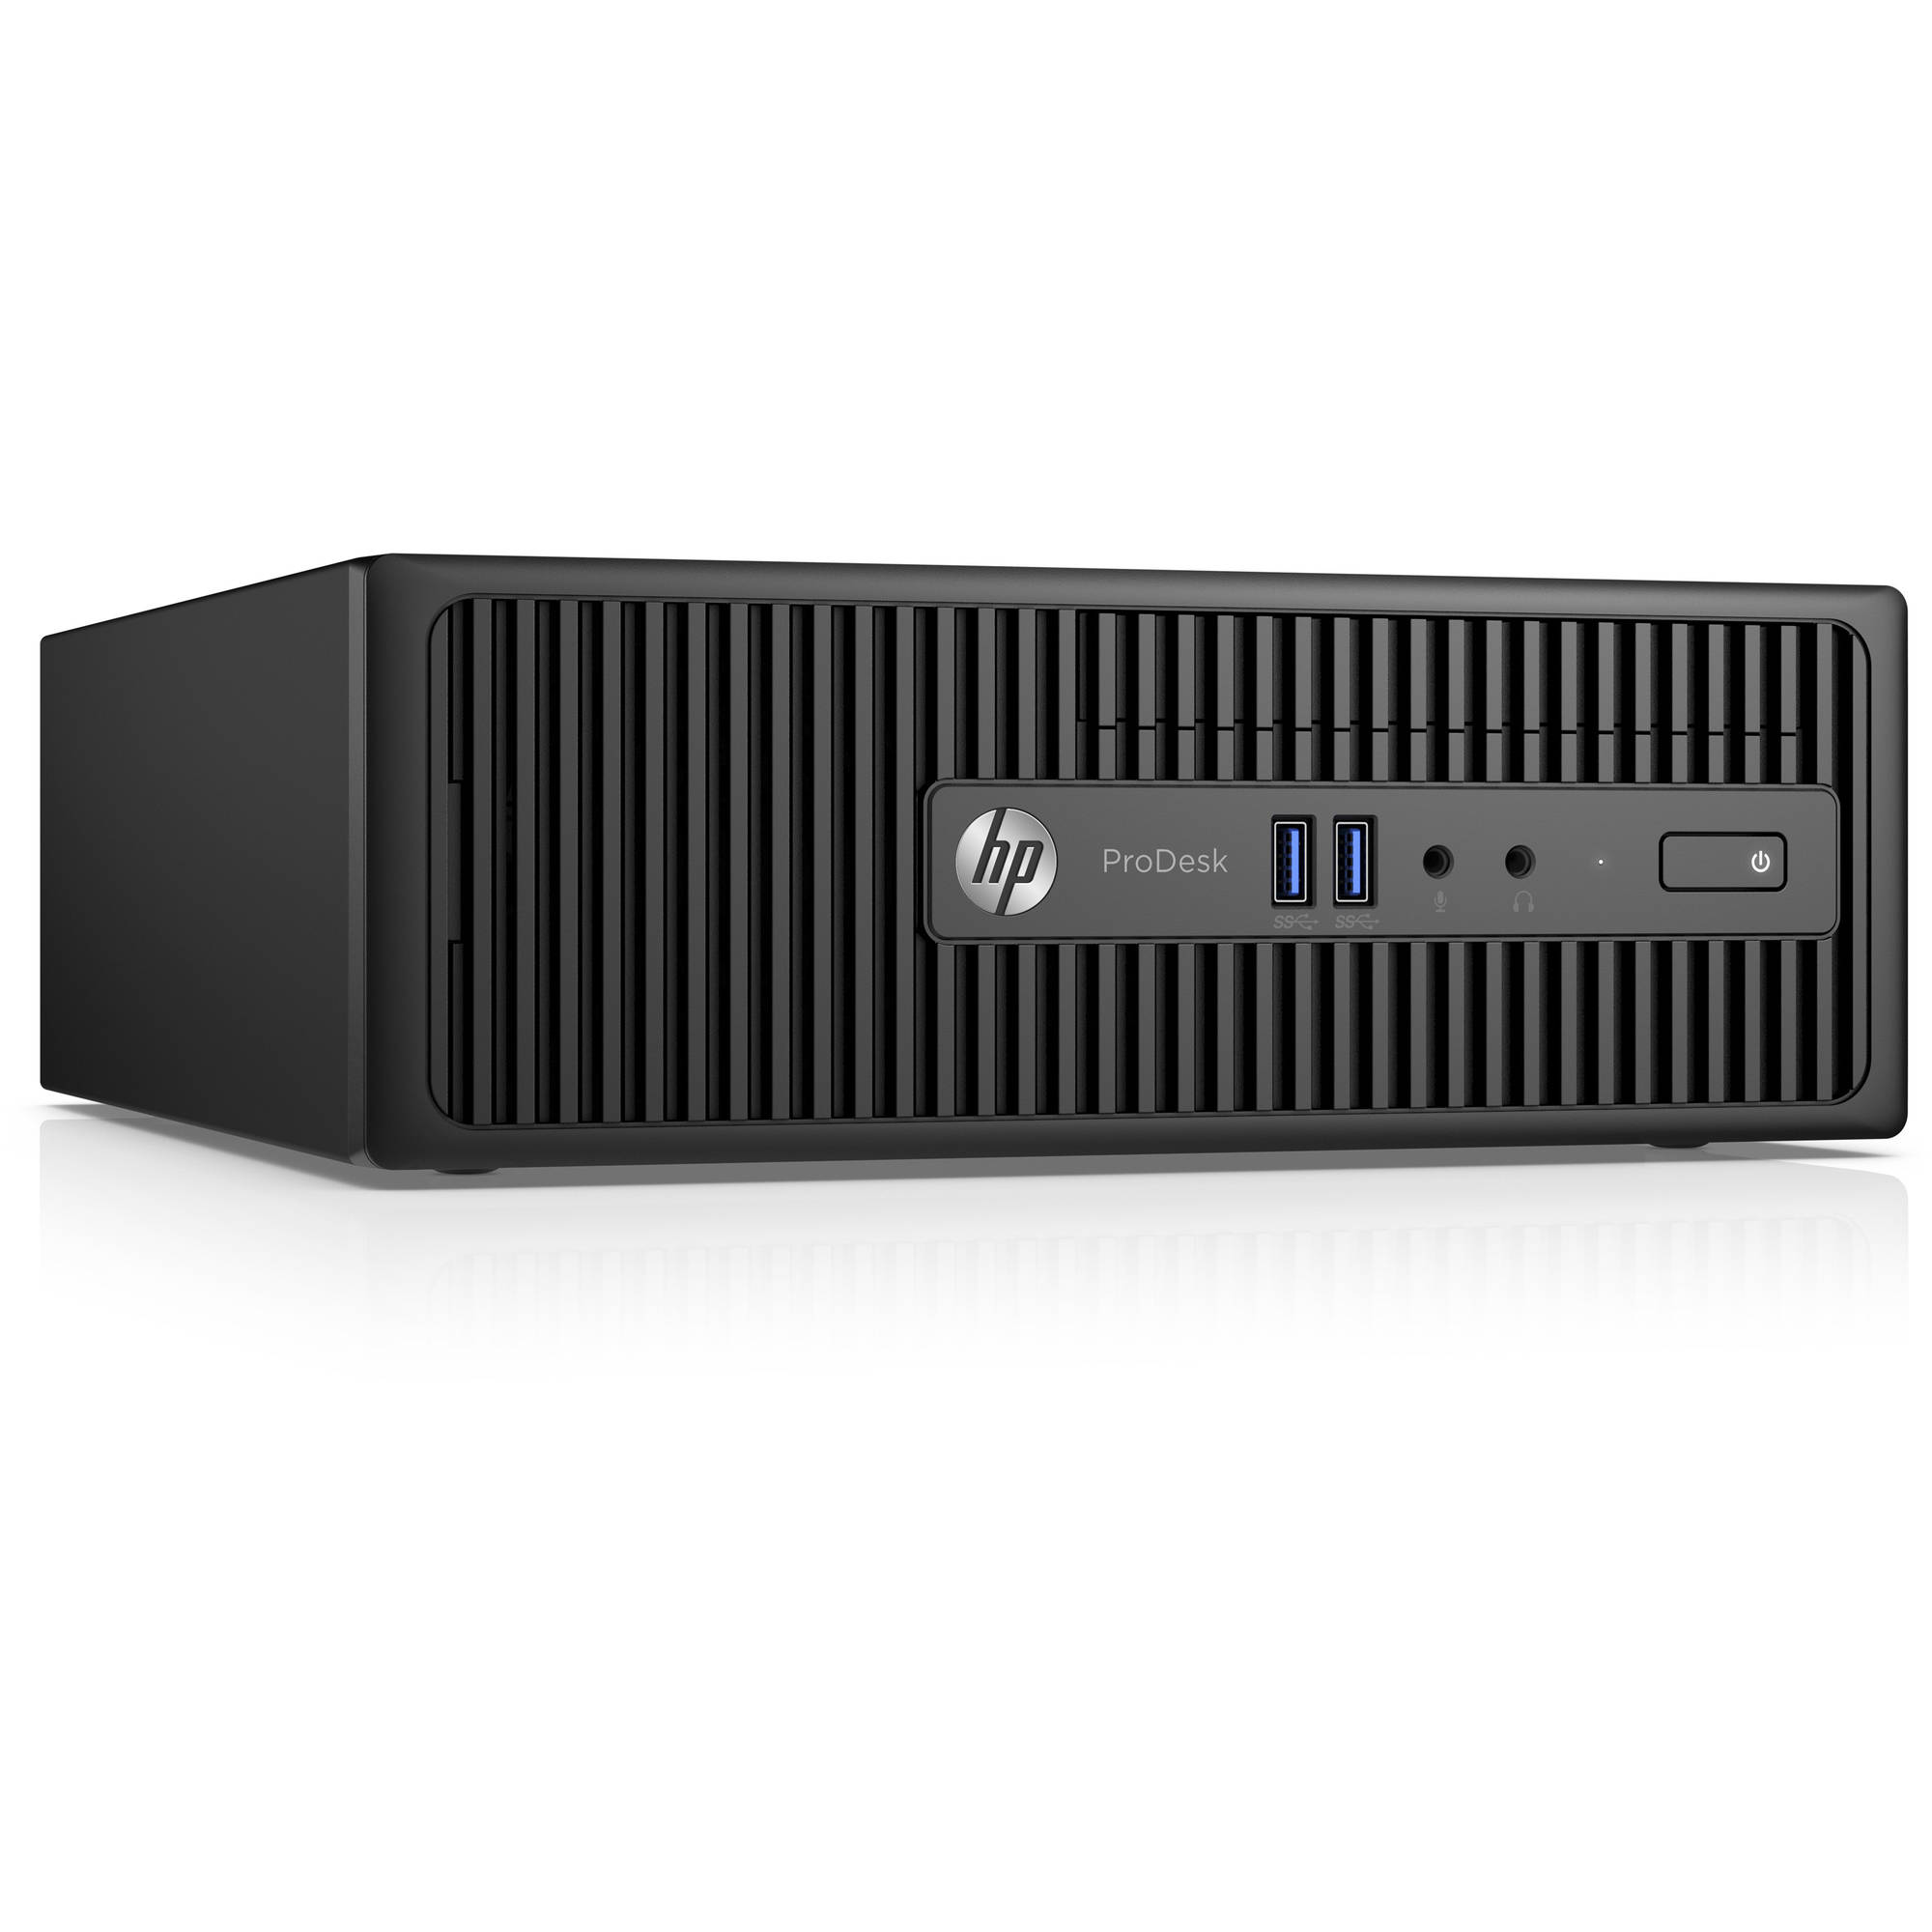 Hp Pro Desk 400 G3 Desktop Pc With Intel Core I 5 - 6500 Processor, 8gb Memory, 1tb Hard Drive And Windows 7 Professional (monitor Not Included)